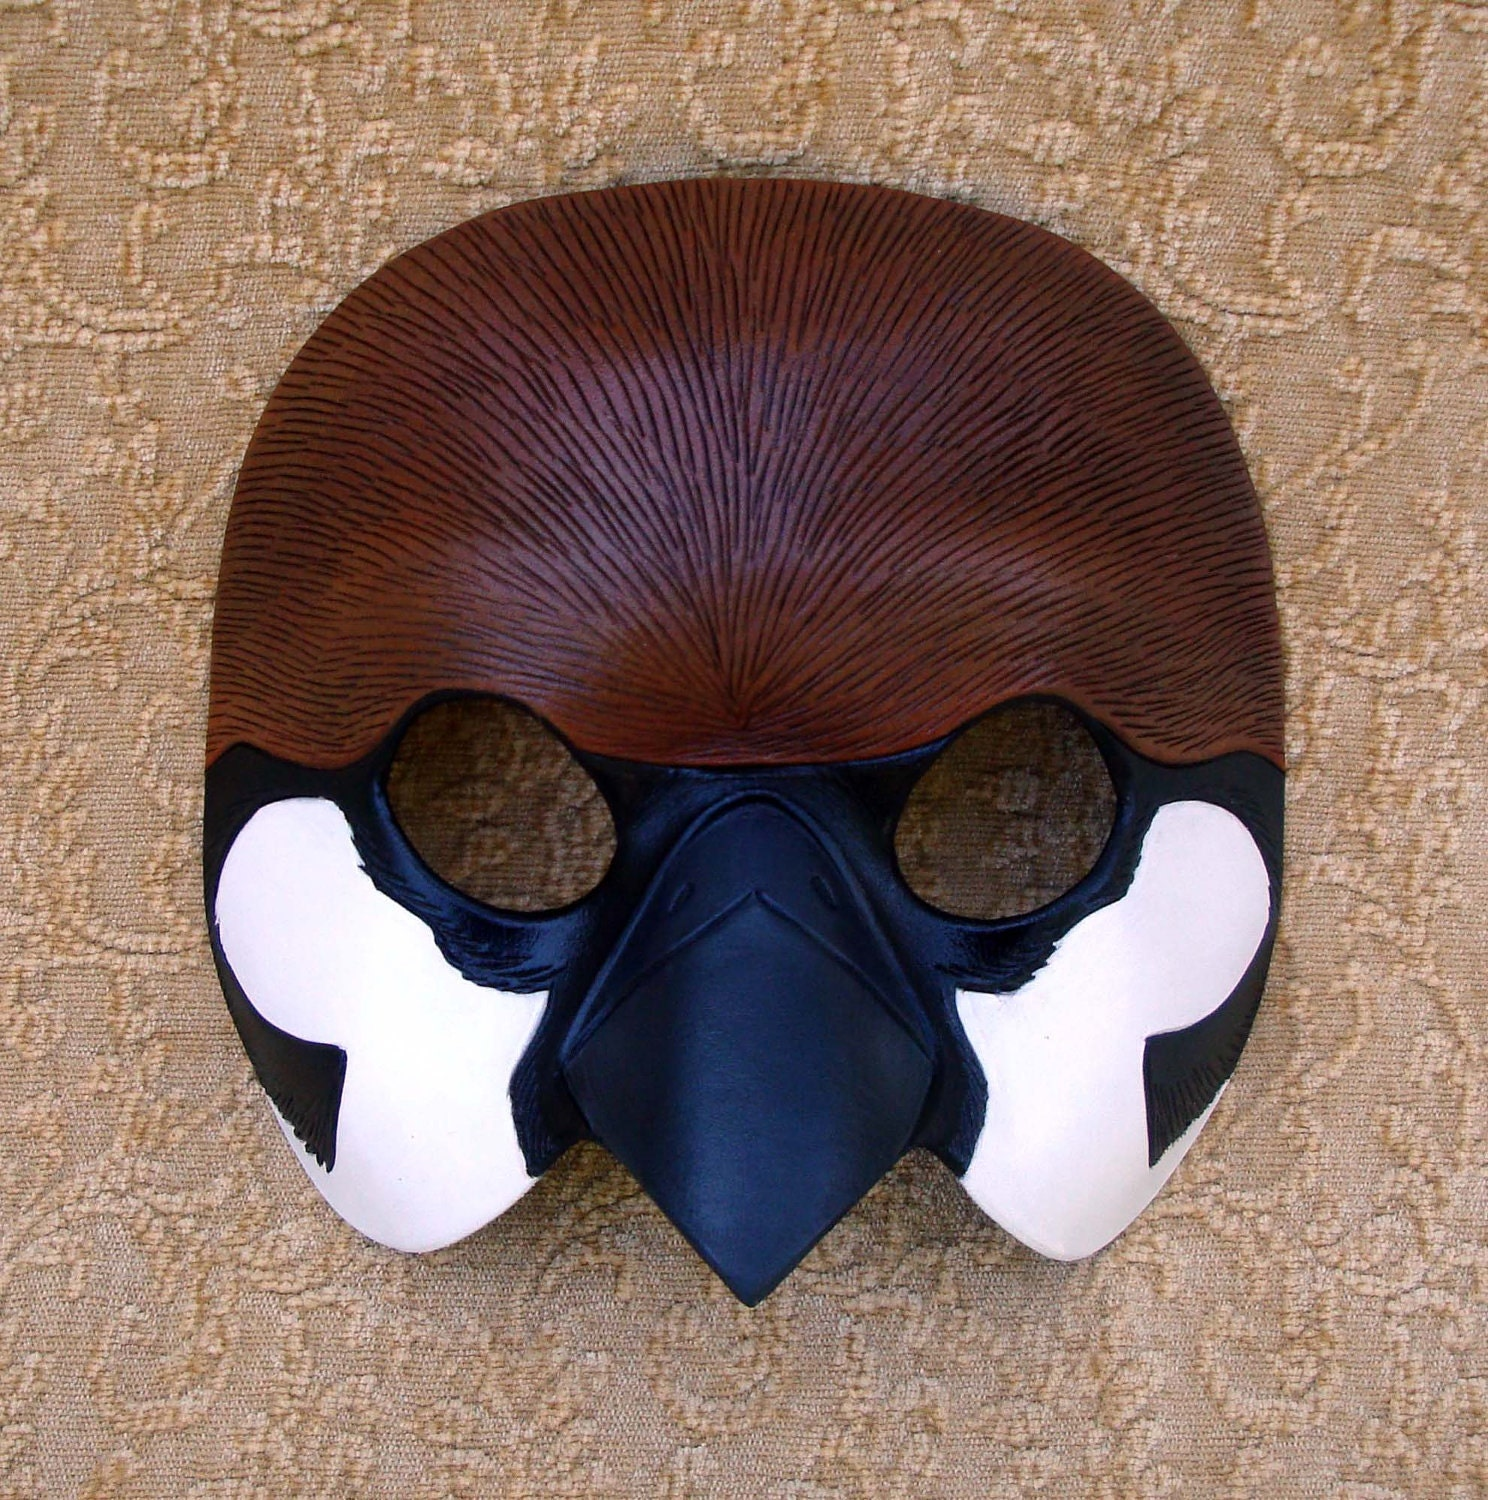 With mask picture 16